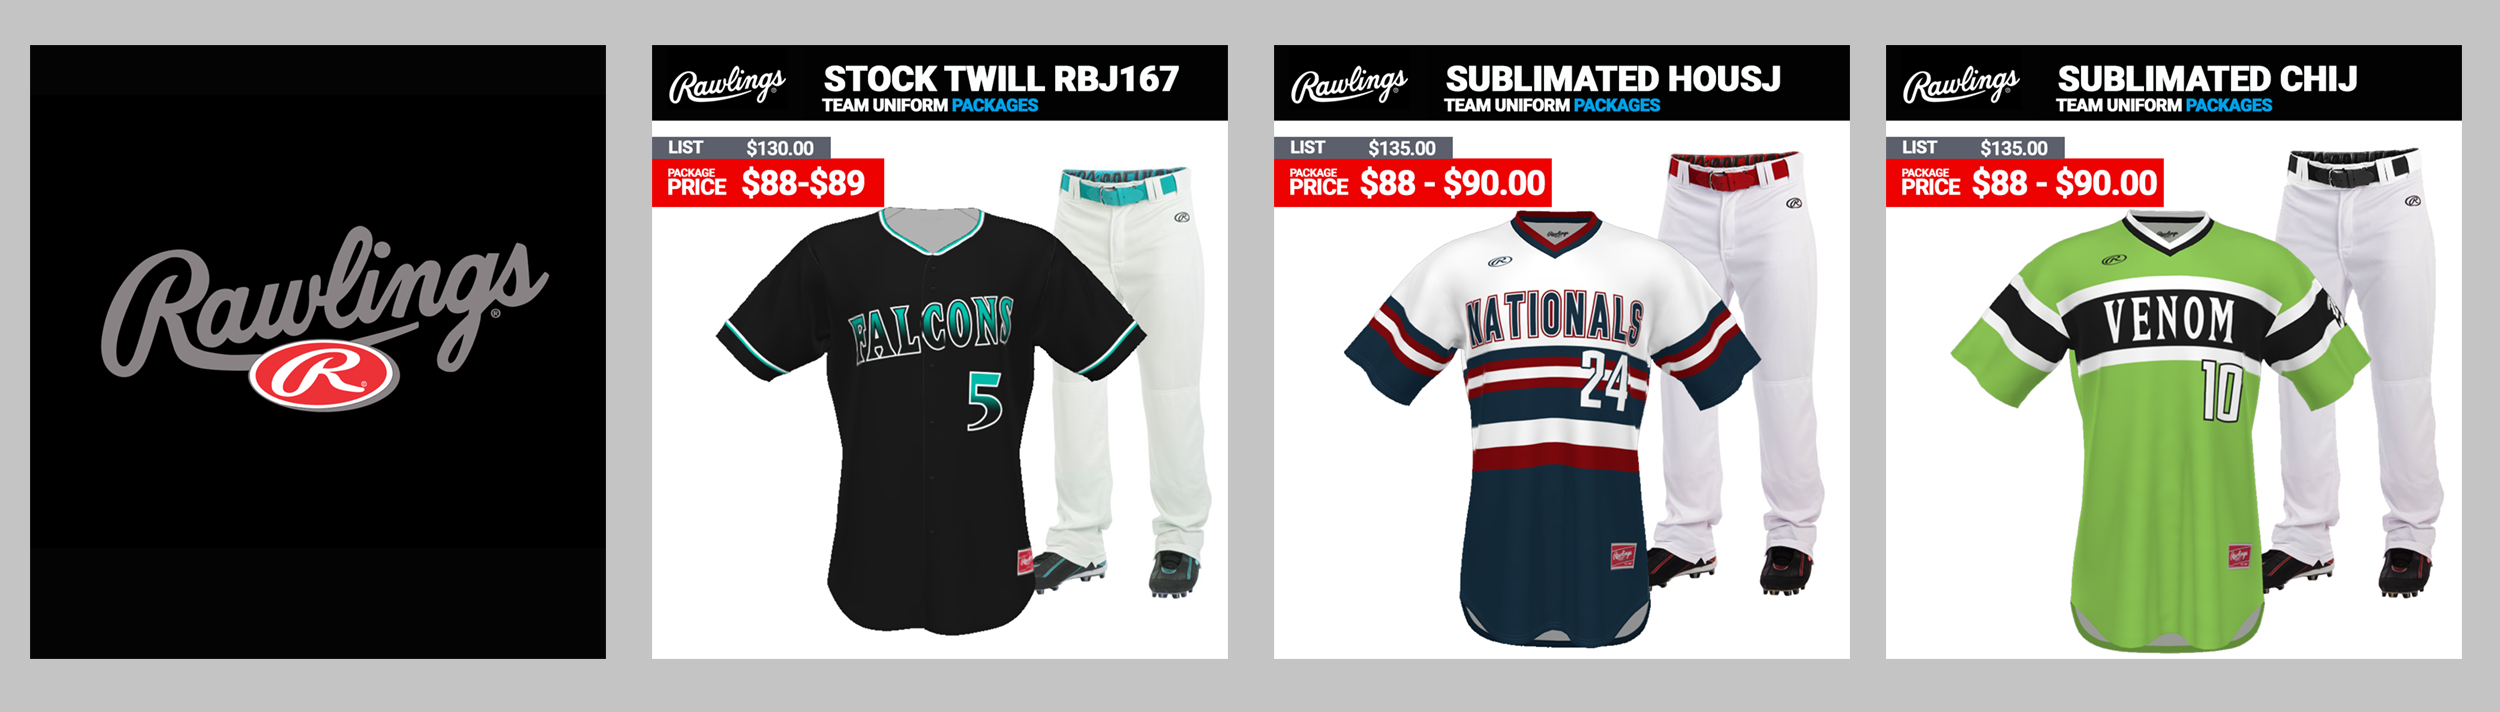 Rawlings Baseball Uniform Packages